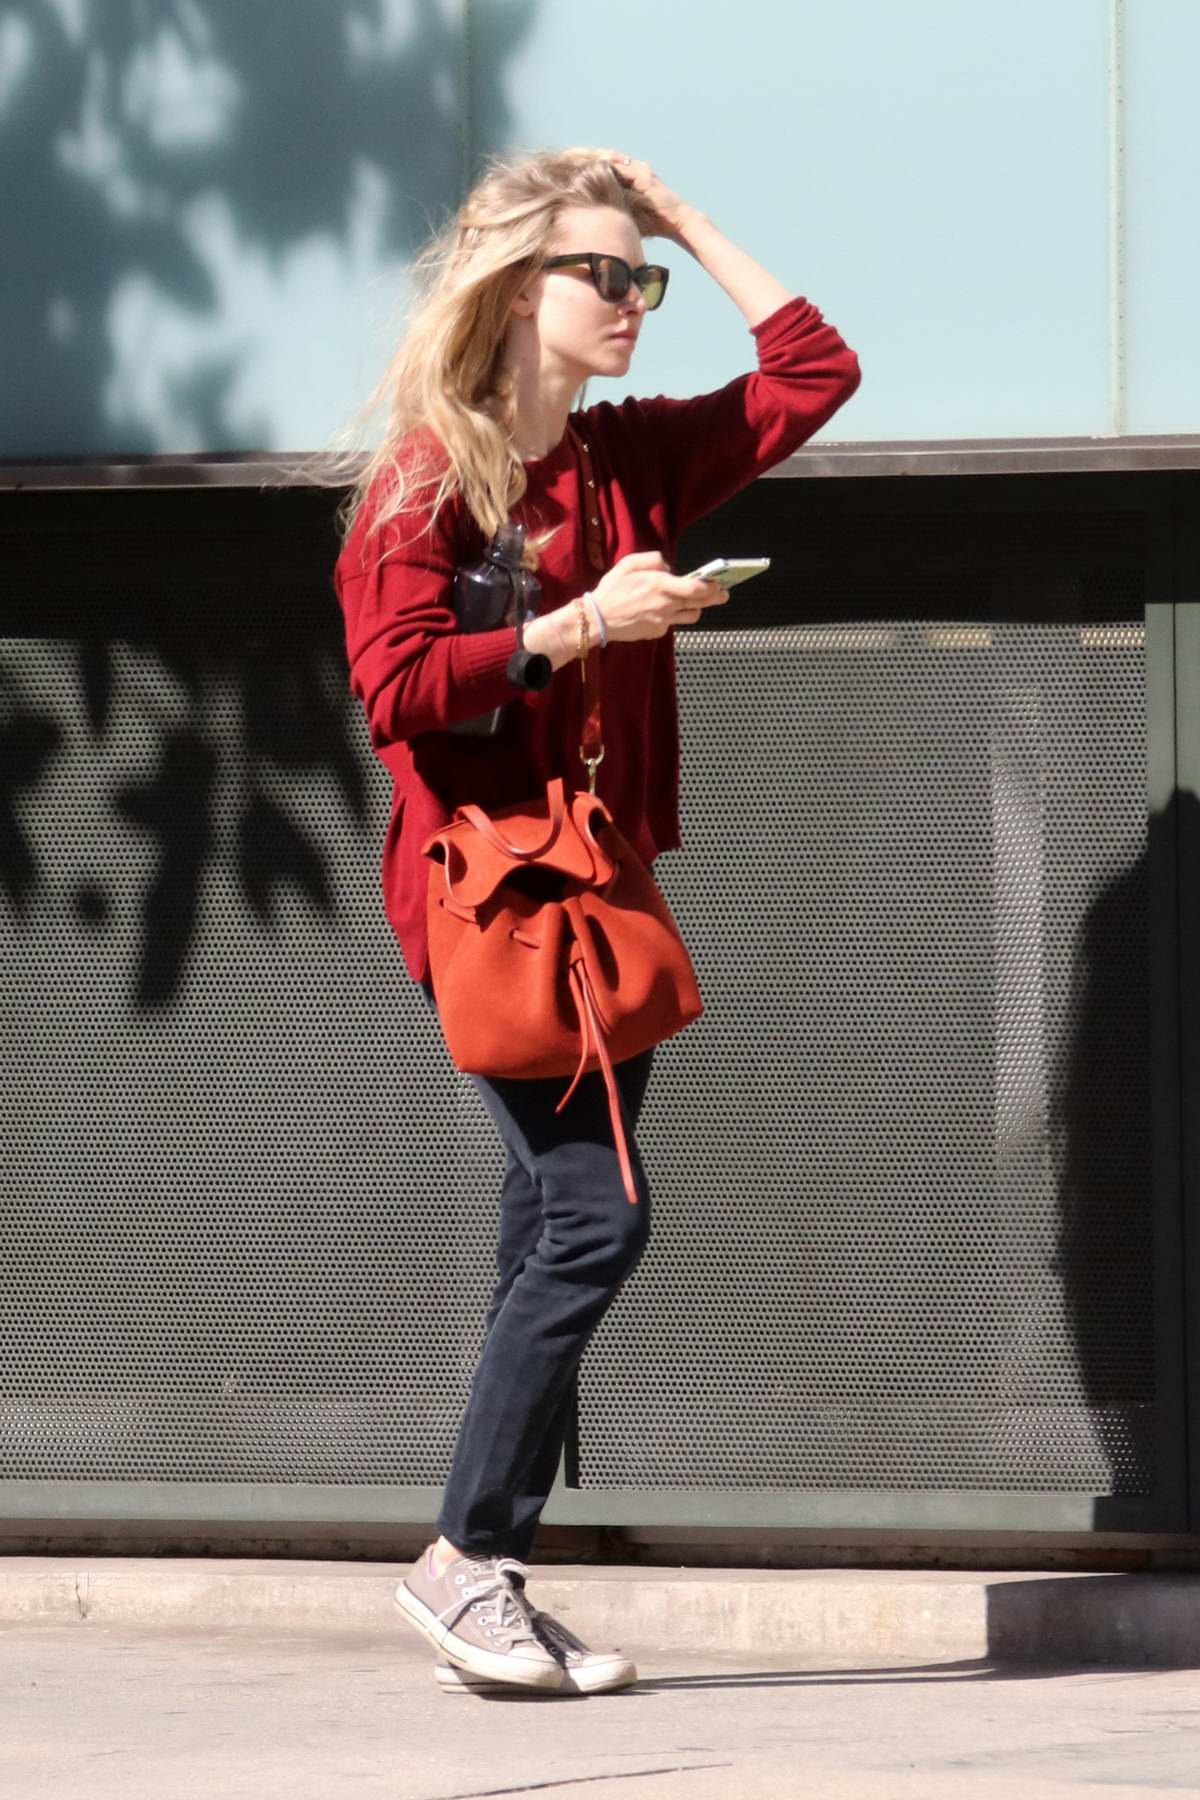 Amanda Seyfried spotted out and about wearing a red sweater and black jeans in Beverly Hills, Los Angeles